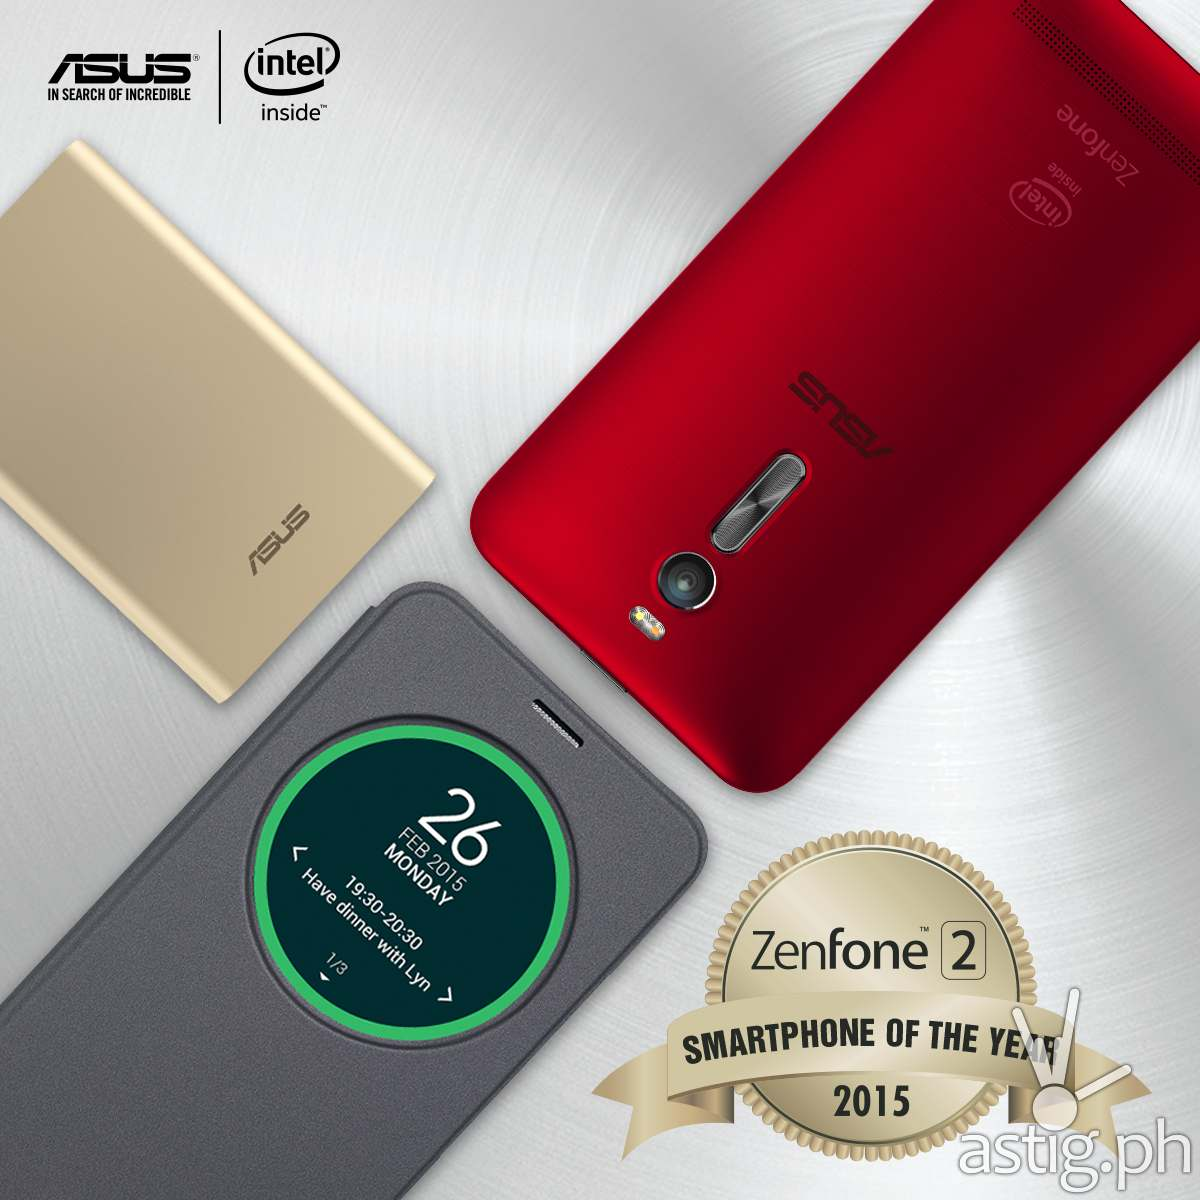 ZenFone 2 Awards